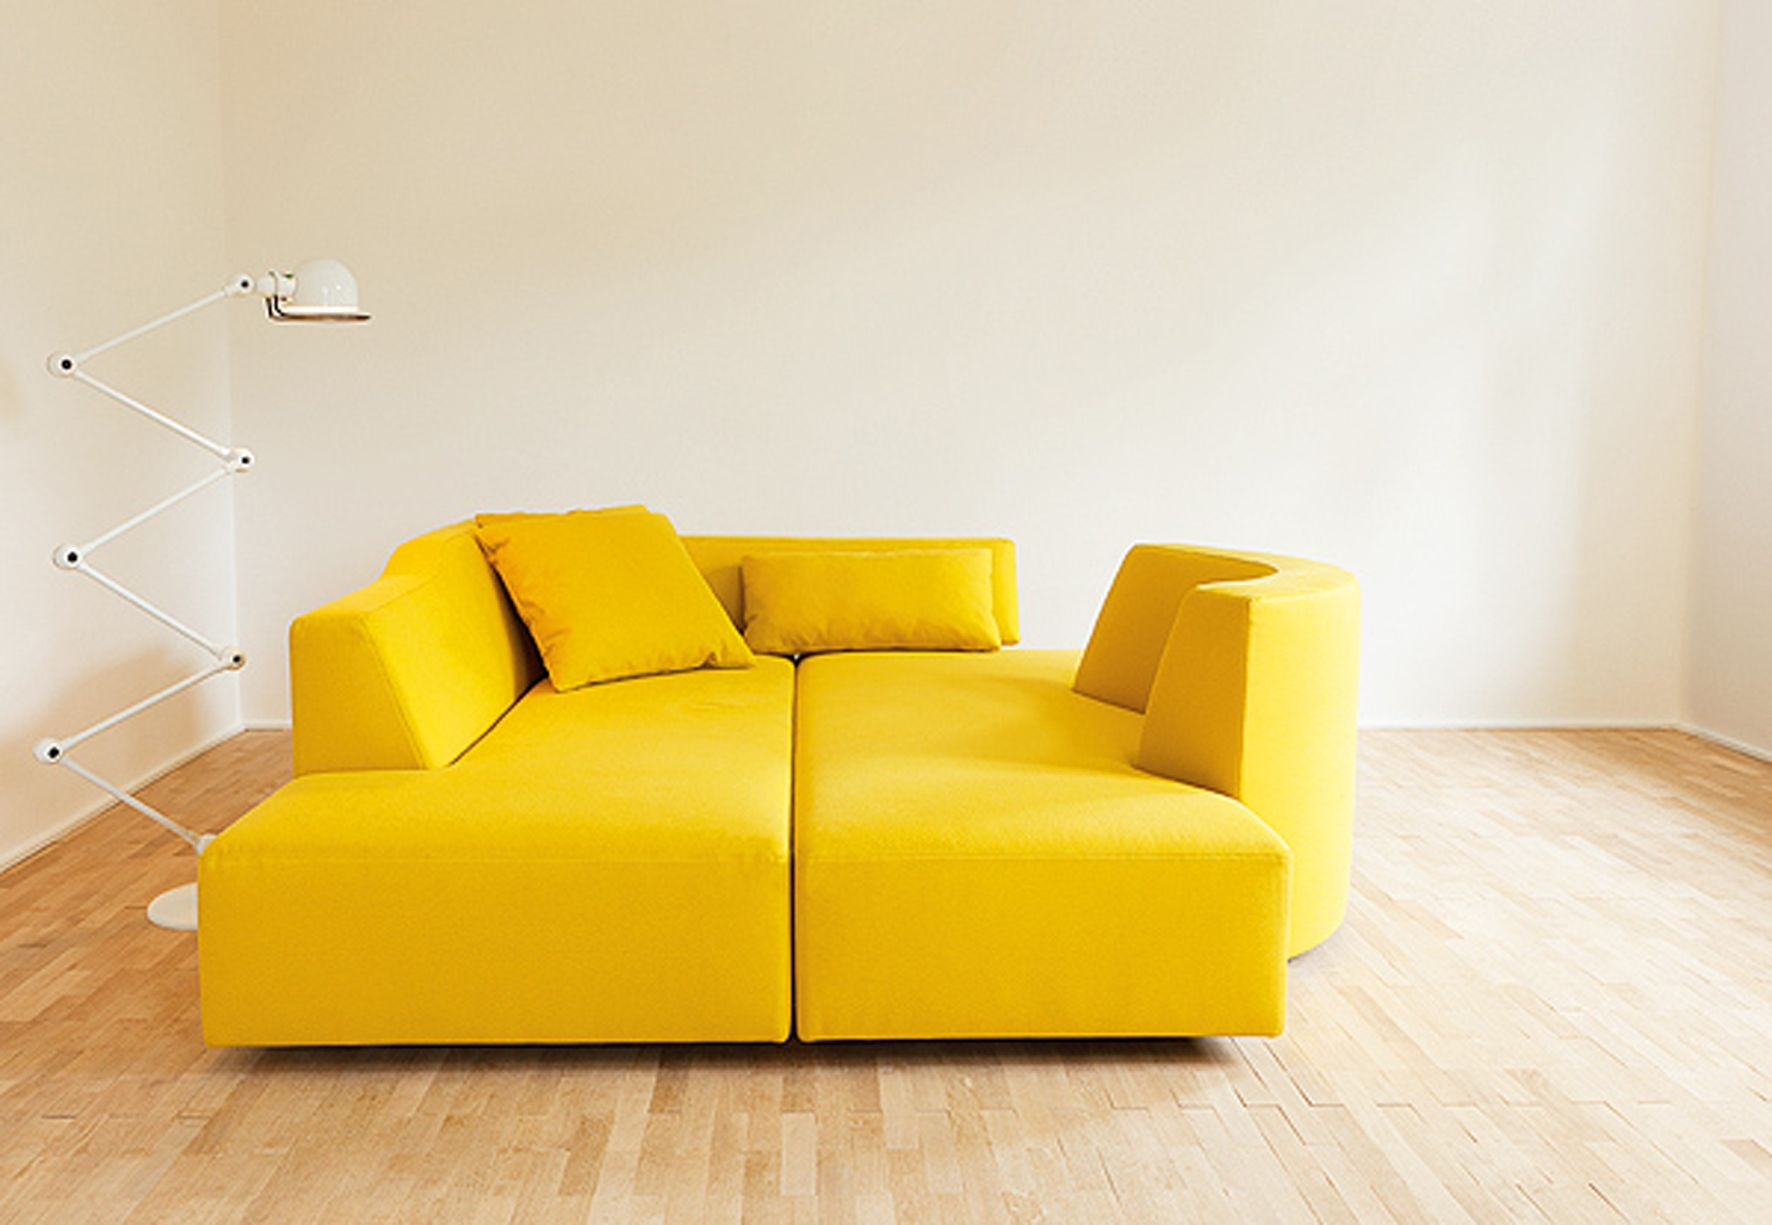 Yellow Möbel Recamiere Brühl Sofa Bed Ladybug Furniture Yay Sofa Sofa Bed Und